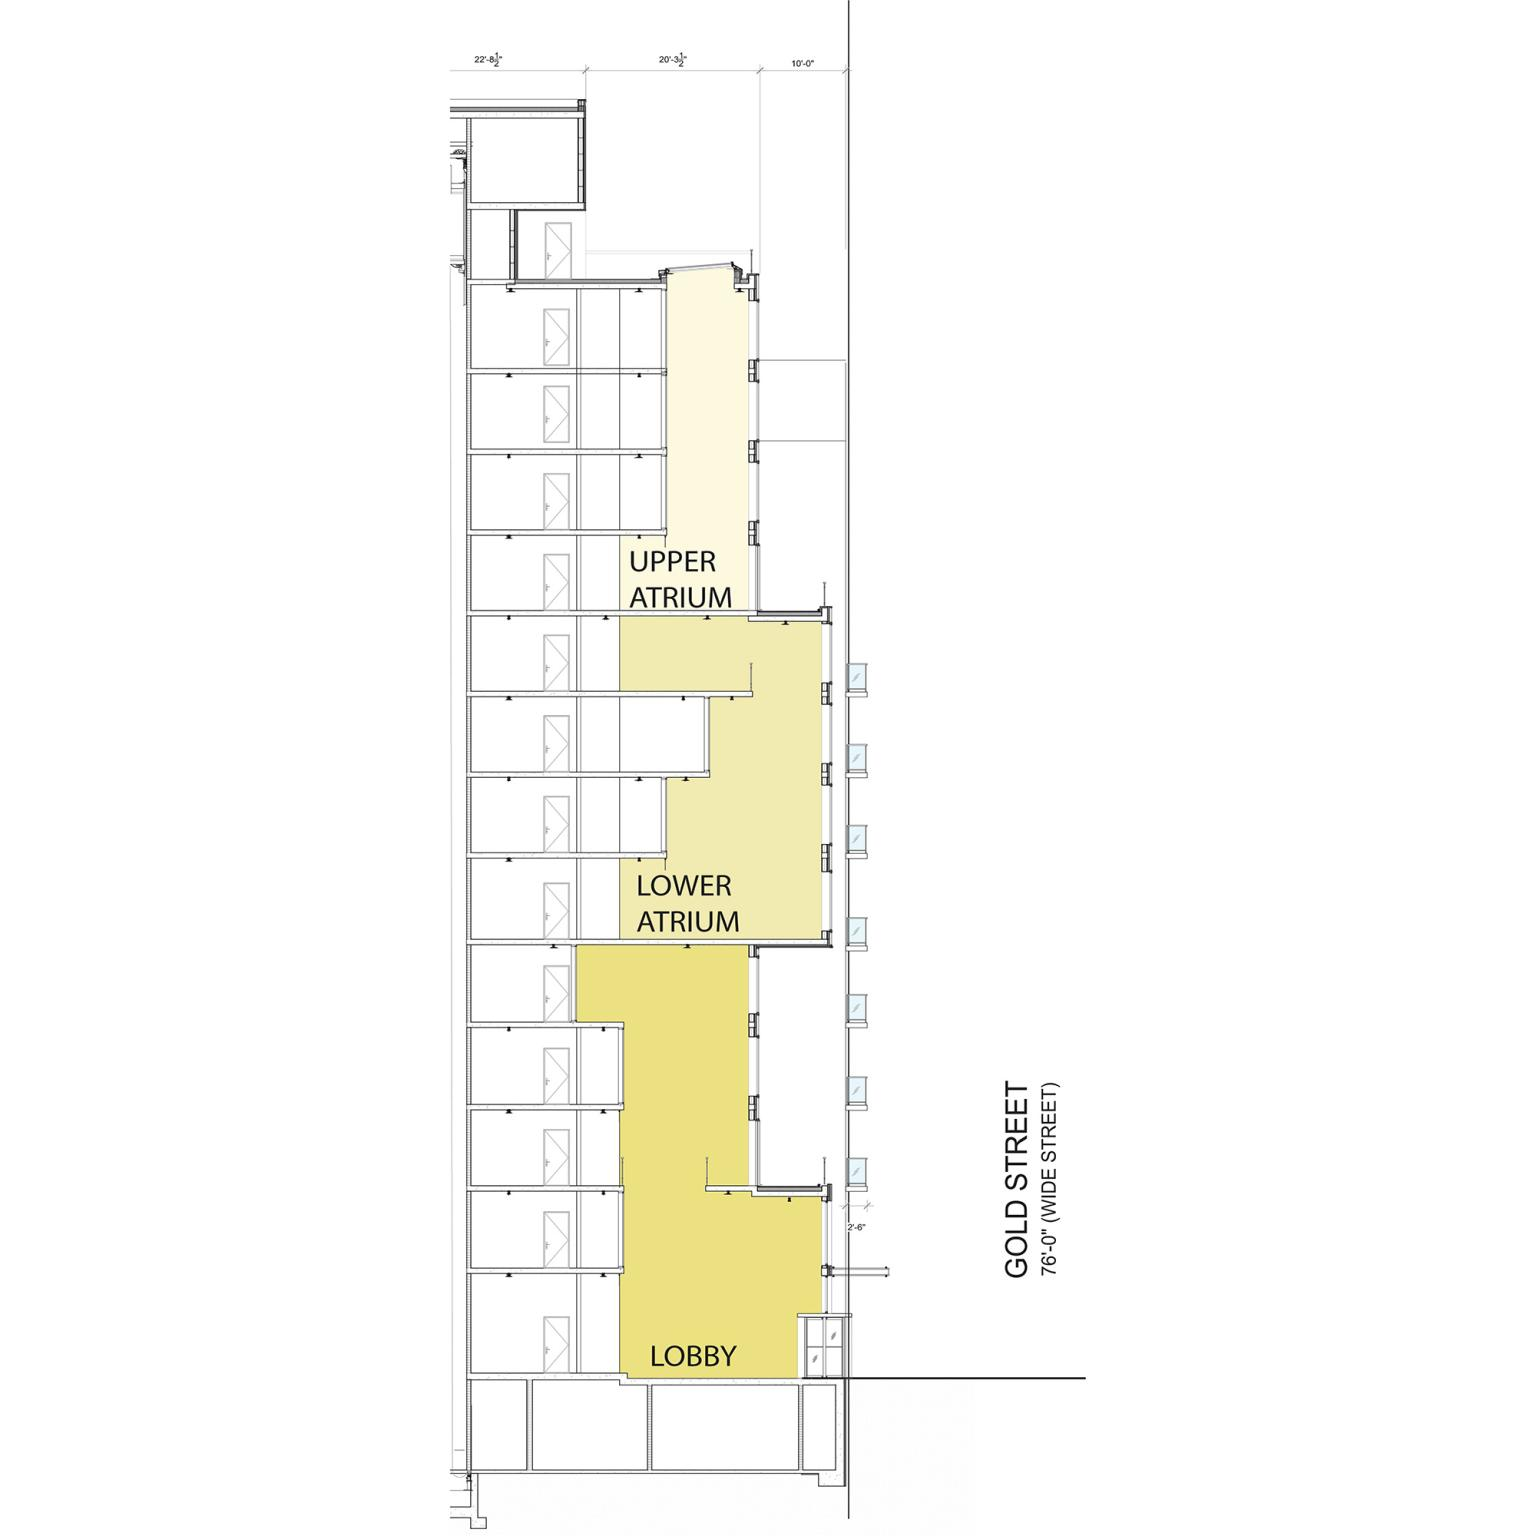 Building Section Illustrates atrium massing within 260 Gold Street - J Frankl Associates